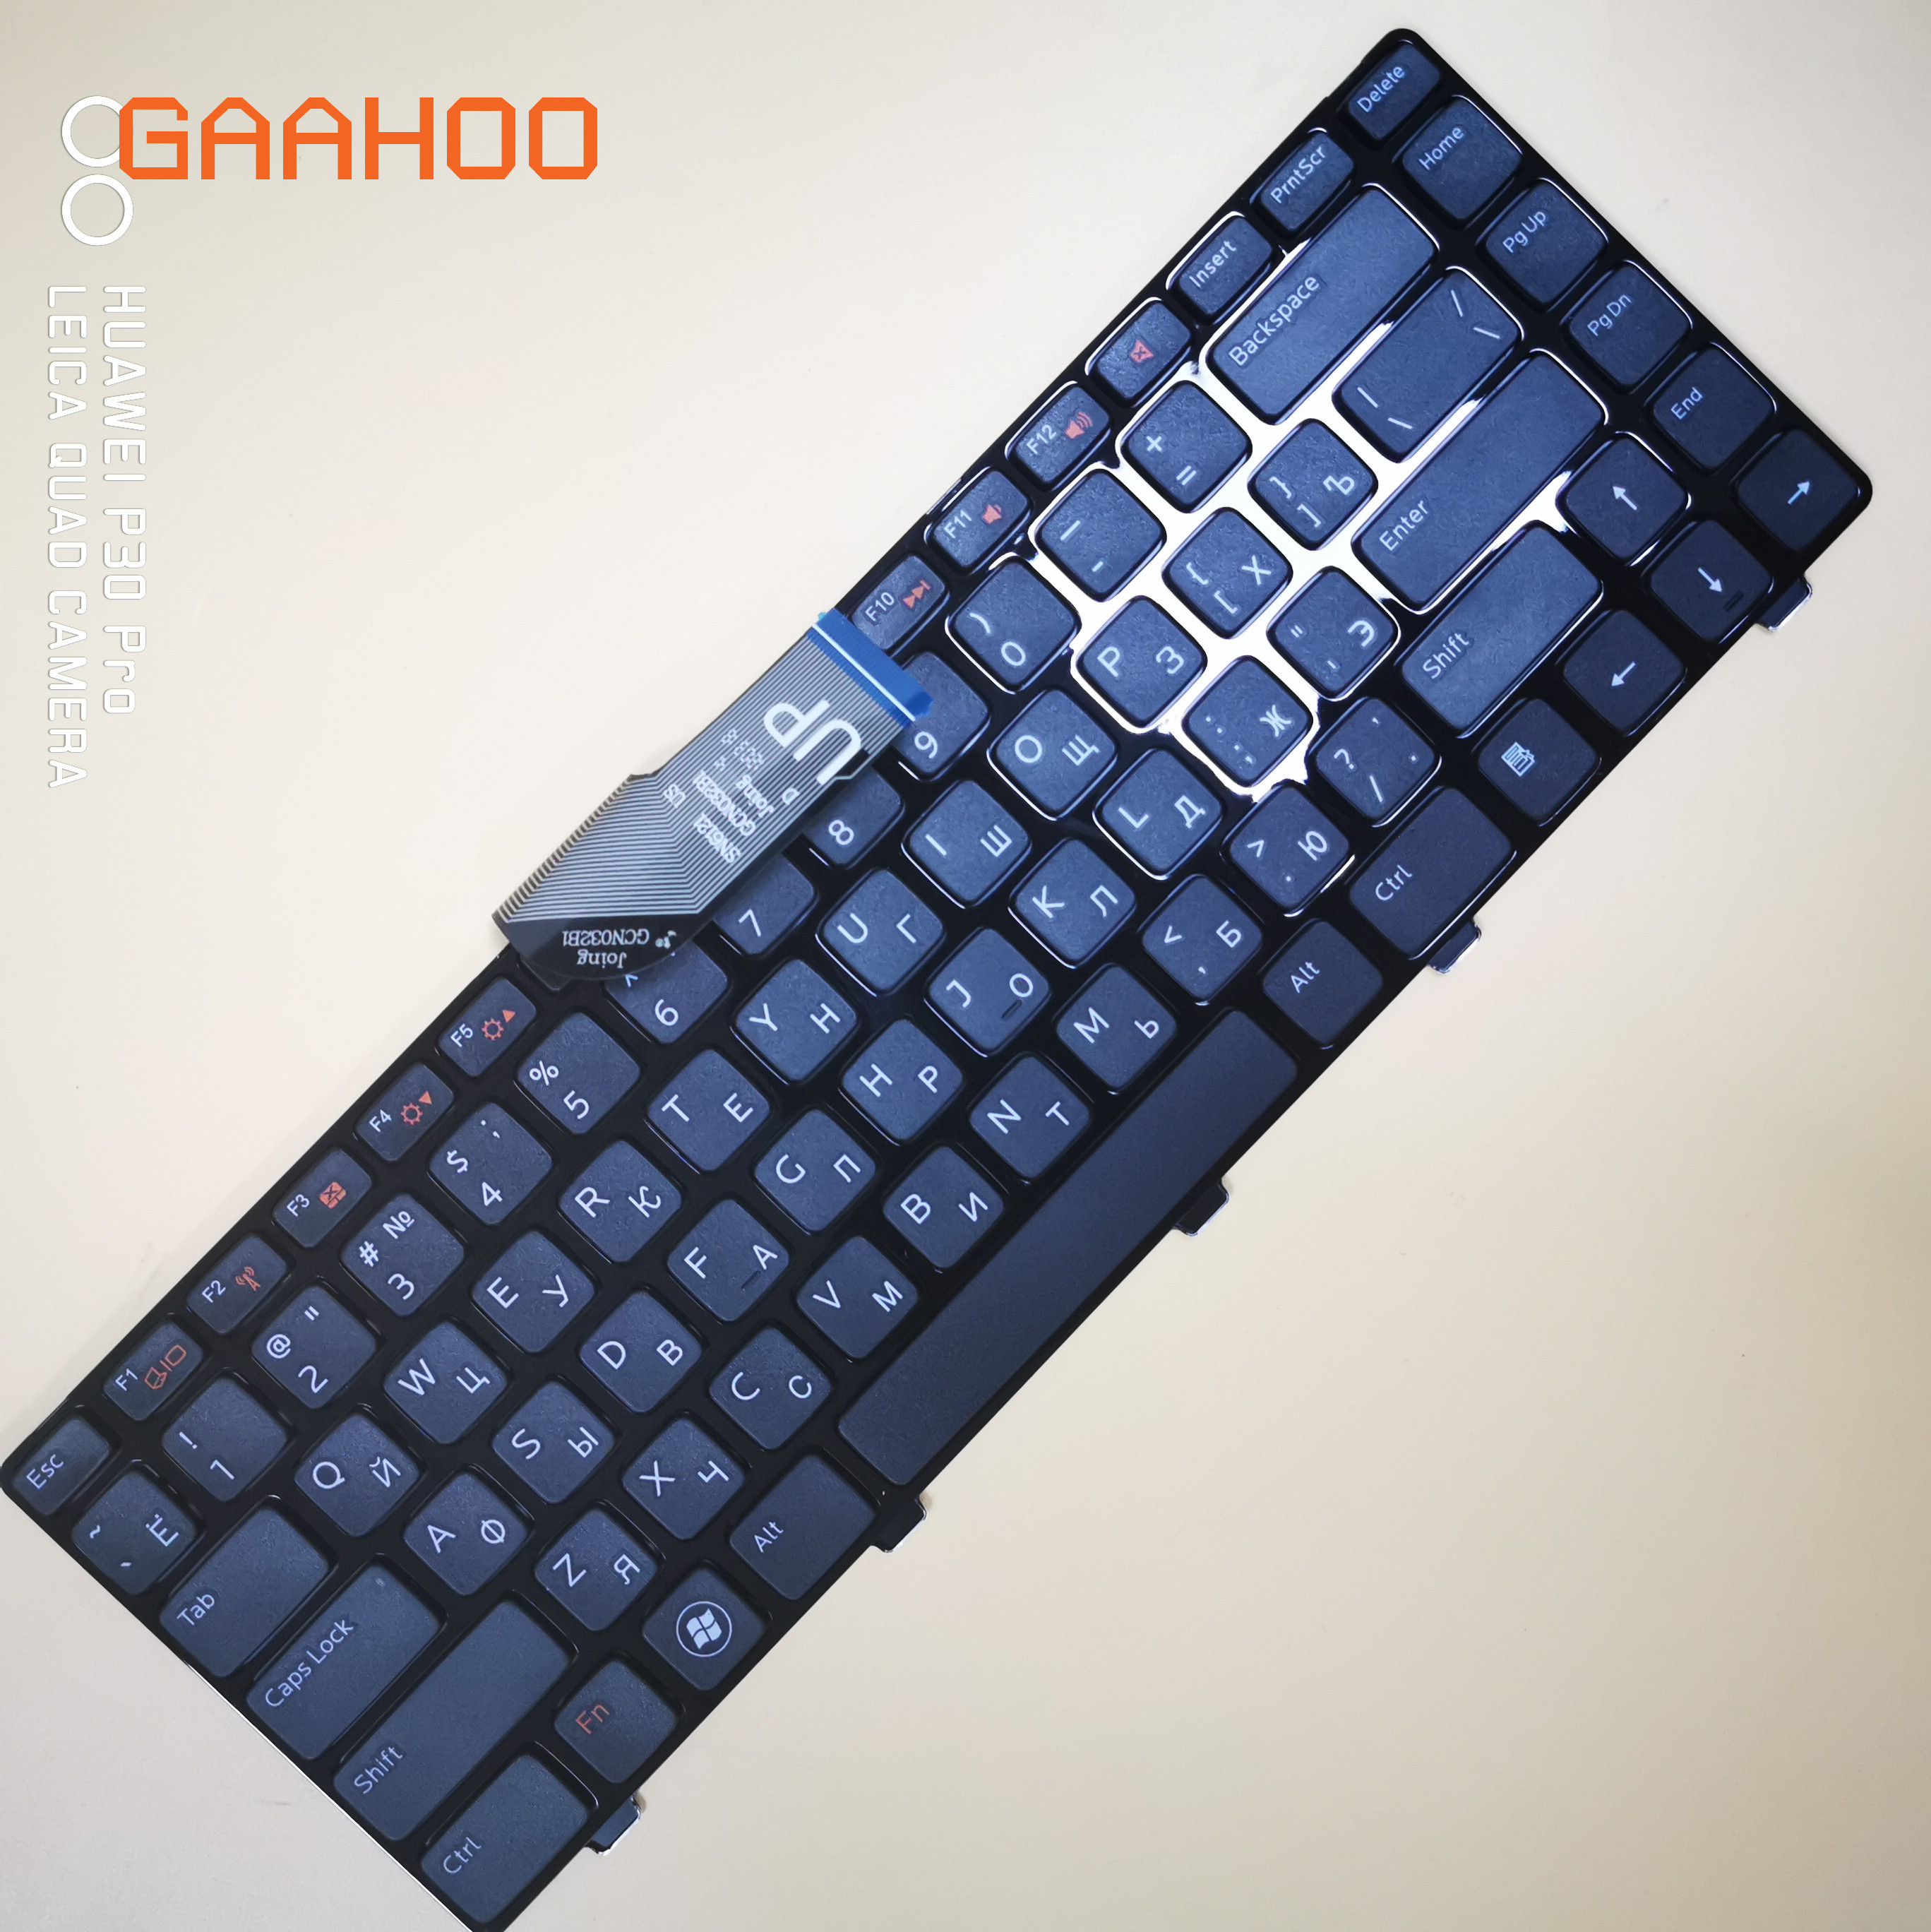 Russian laptop <font><b>keyboard</b></font> for <font><b>DELL</b></font> Inspiron 14R N4110 M4110 N4050 M4040 N5050 M5050 M5040 N5040 3330 X501LX502L P17S P18 N4120 RU image